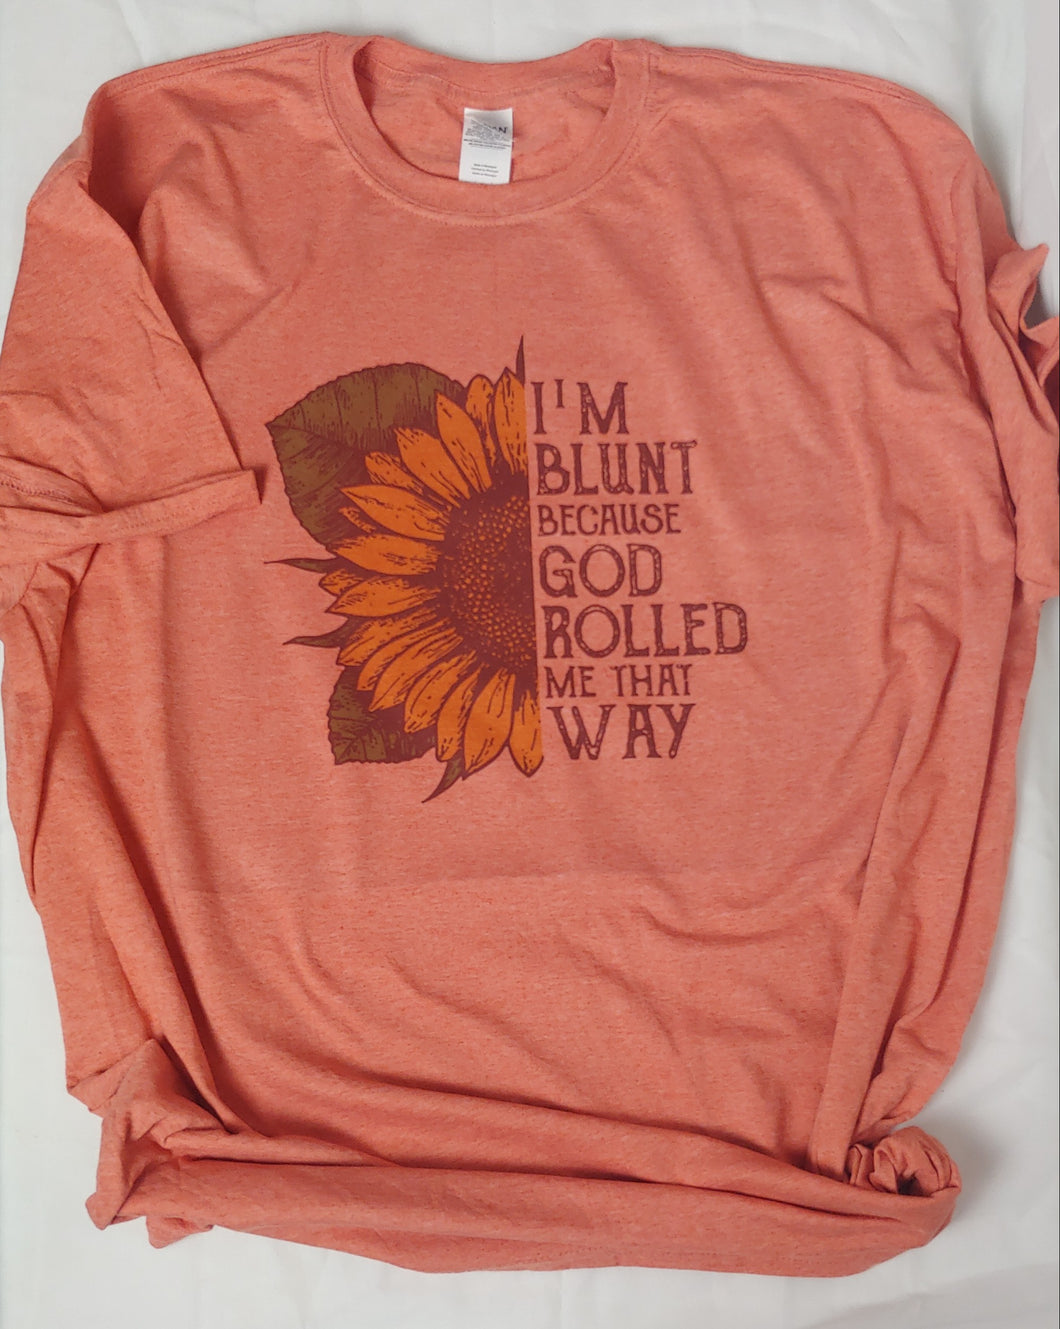 I'm Blunt Because God Rolled Me That Way, Adult Tee